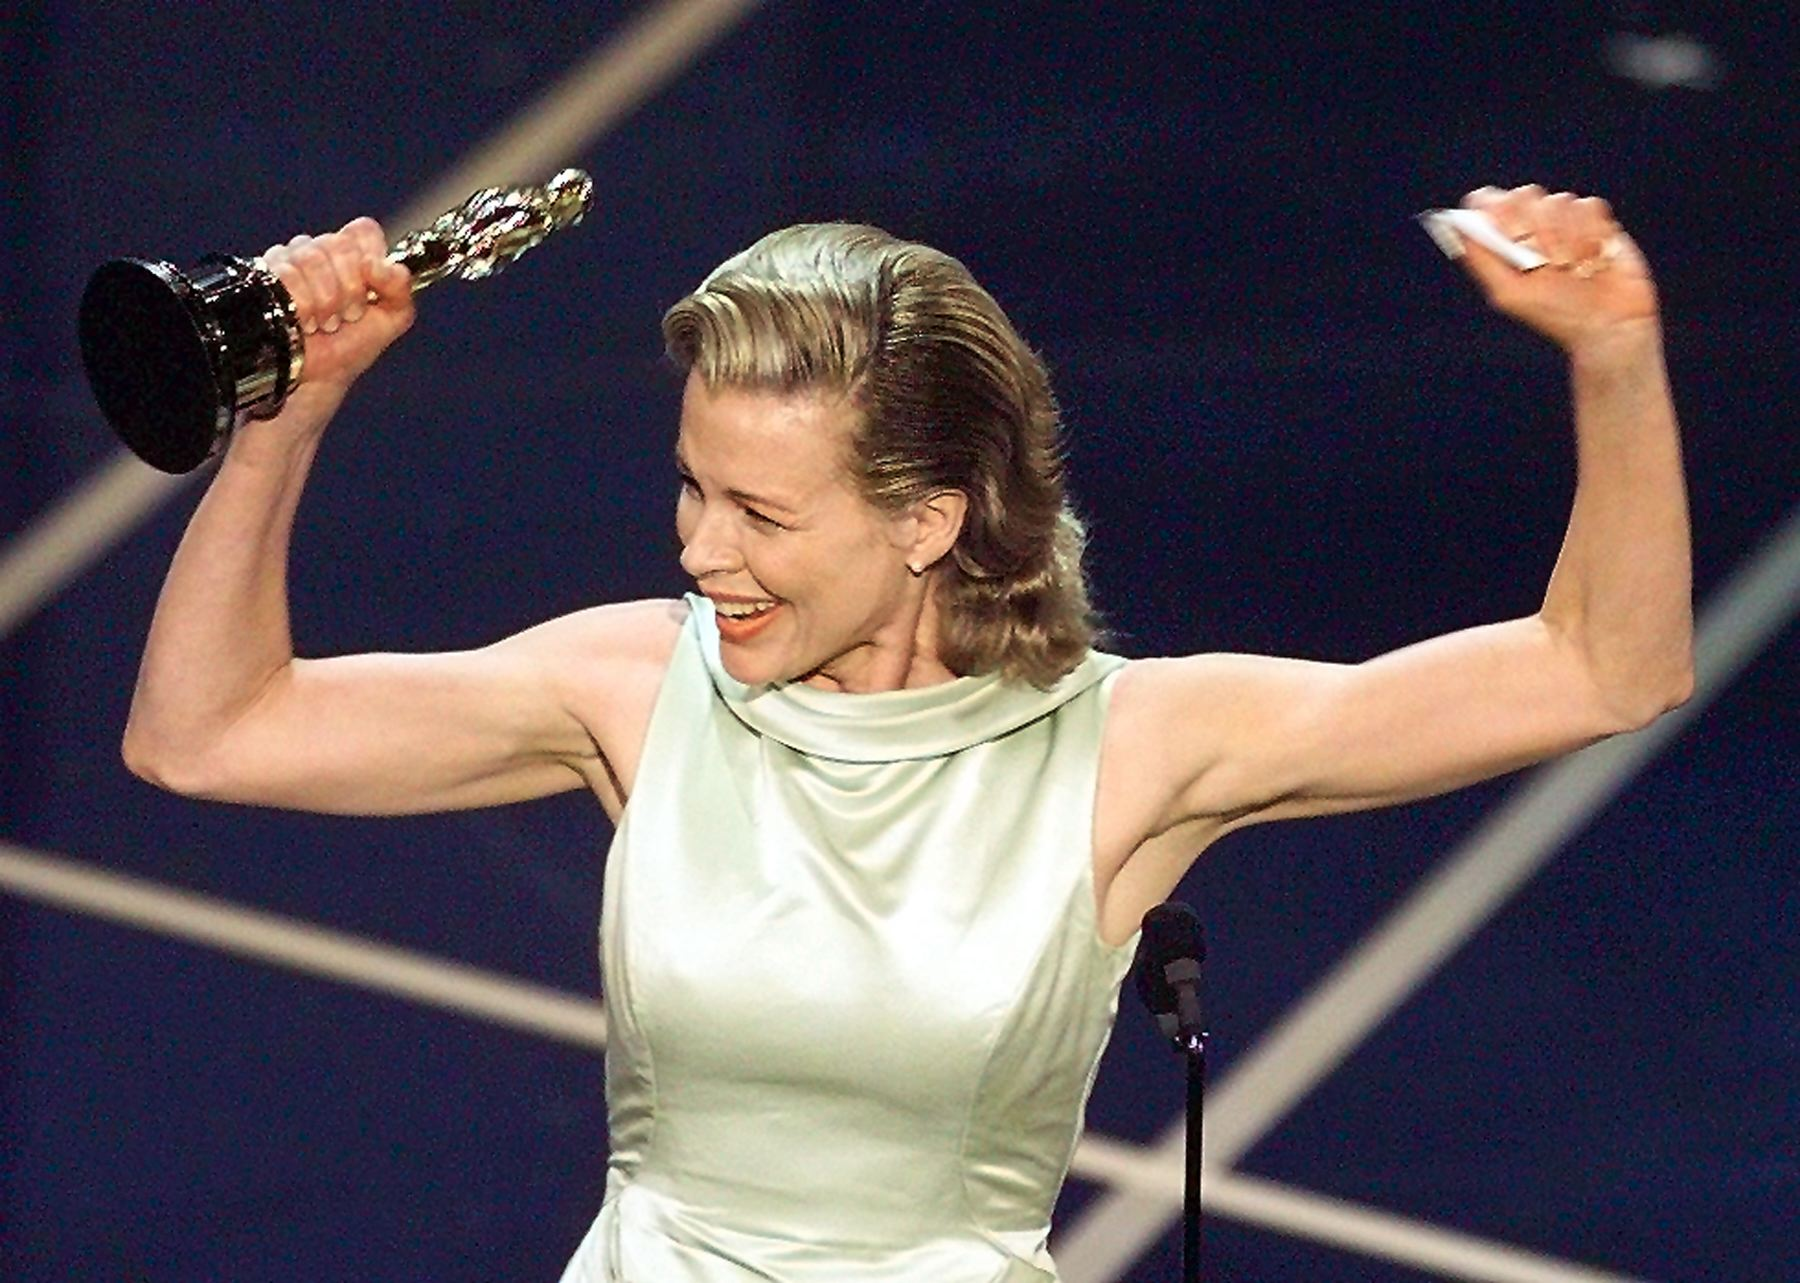 """Actress Kim Basinger holds up her Oscar after winning the Best Supporting Actress Oscar for her role in """"L.A. Confidential"""" during the 70th Academy Awards at the Shrine Auditorium 23 March."""